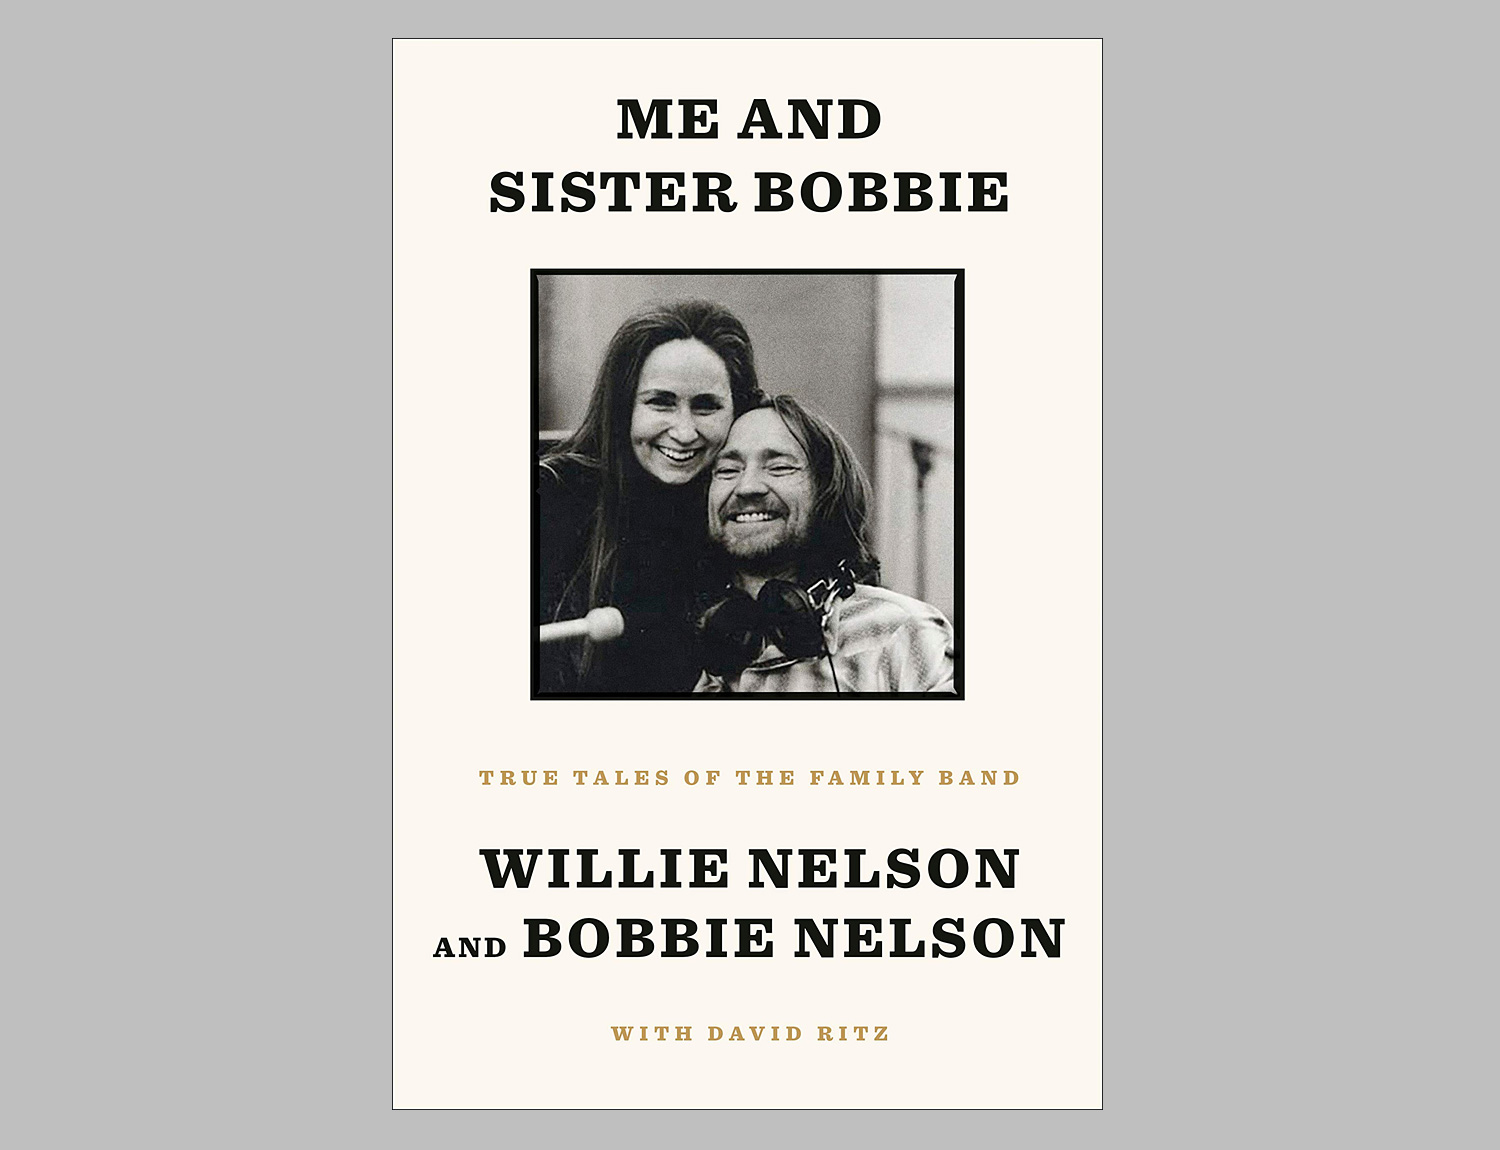 Me and Sister Bobbie: True Tales of the Family Band at werd.com